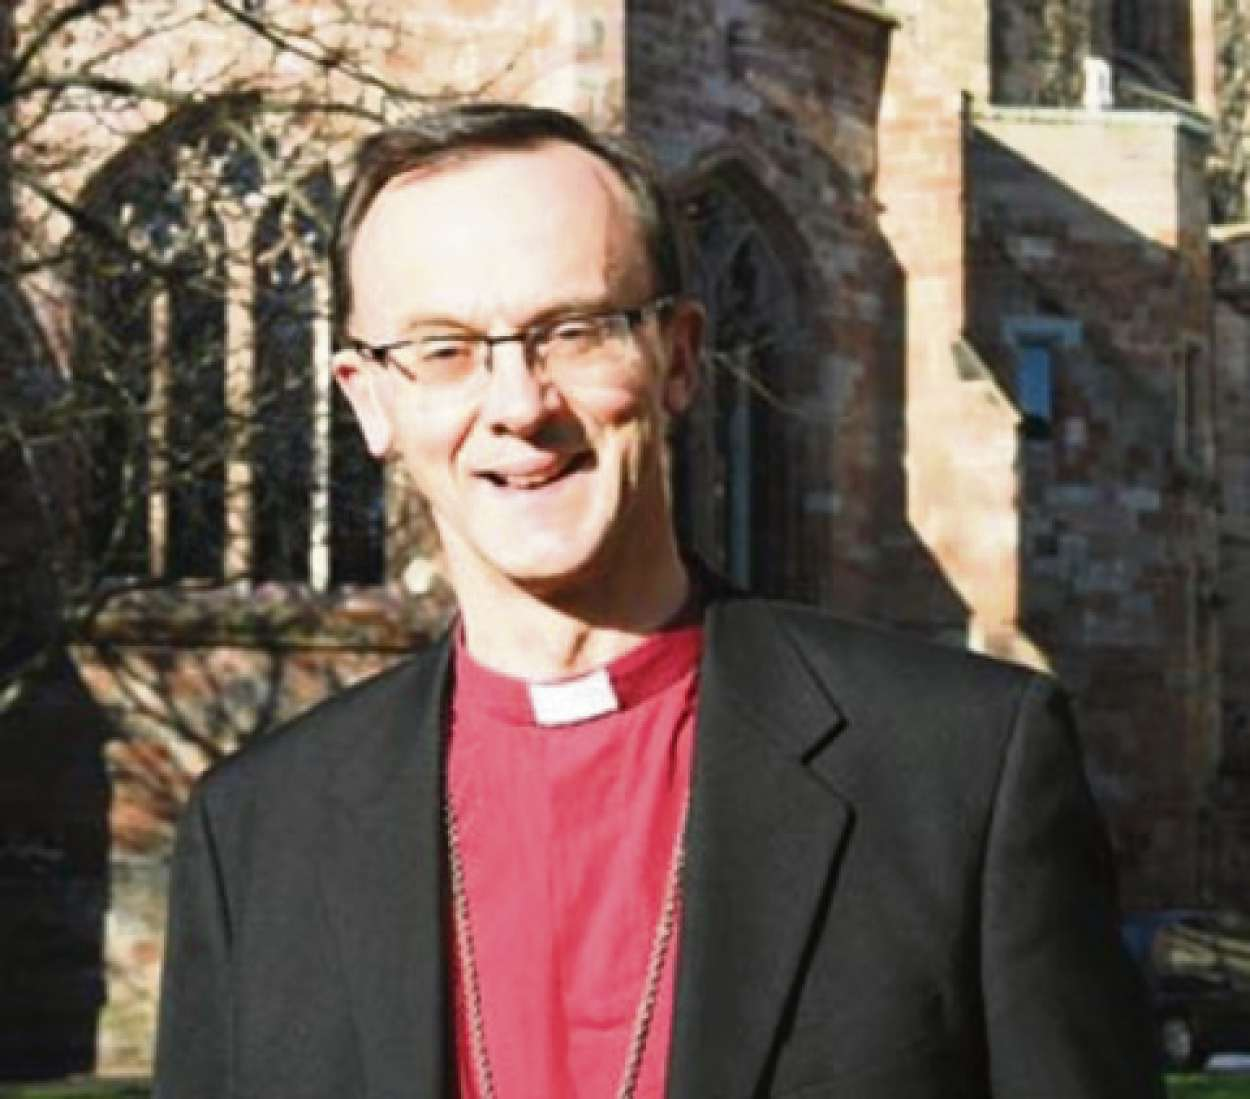 The Bishop of Worcester, Dr John Inge, backed the vote to allow women bishops in the Church of England.